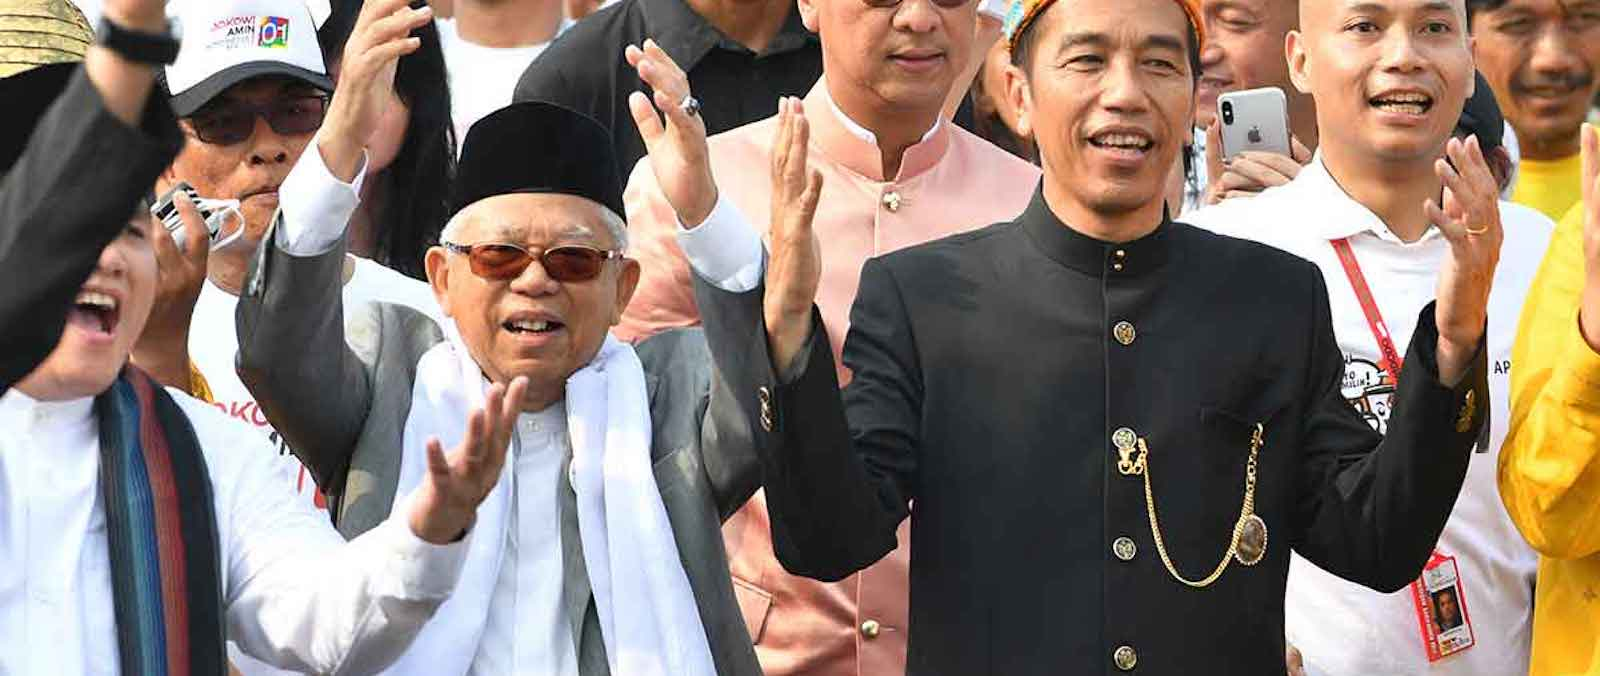 Indonesia's President Joko Widodo (R) and his running mate Ma'ruf Amin (L) (Photo: andisanjaya/ Flickr)